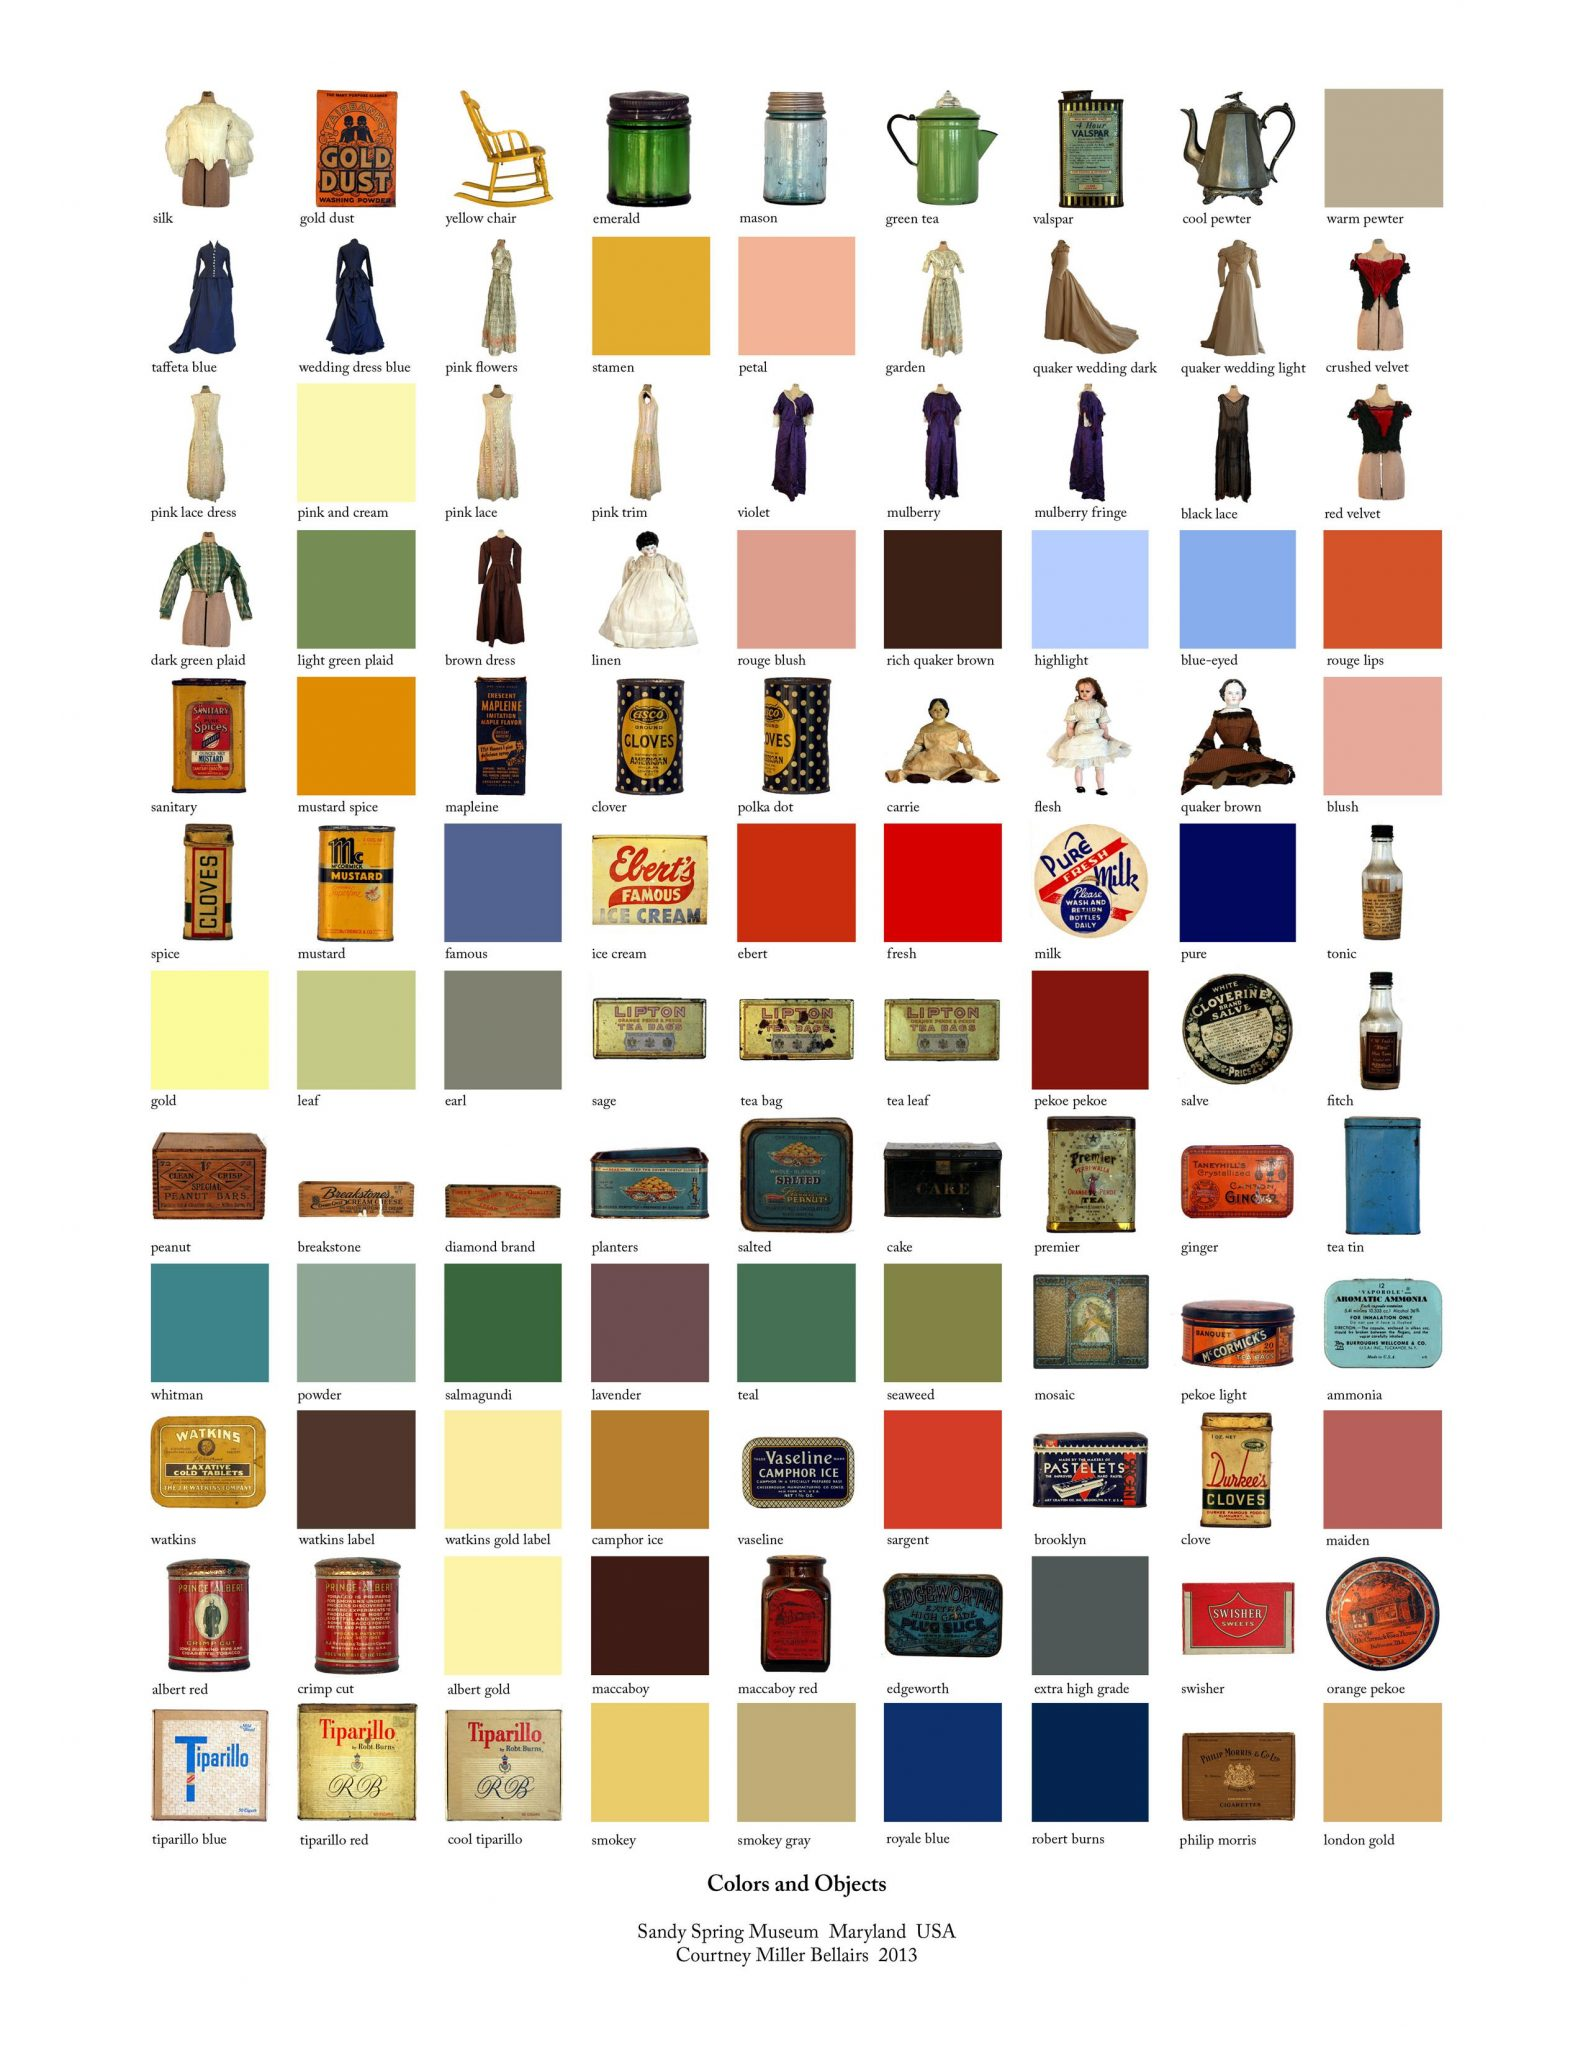 collage of many images of different color swatches, dresses, and miscellaneous items